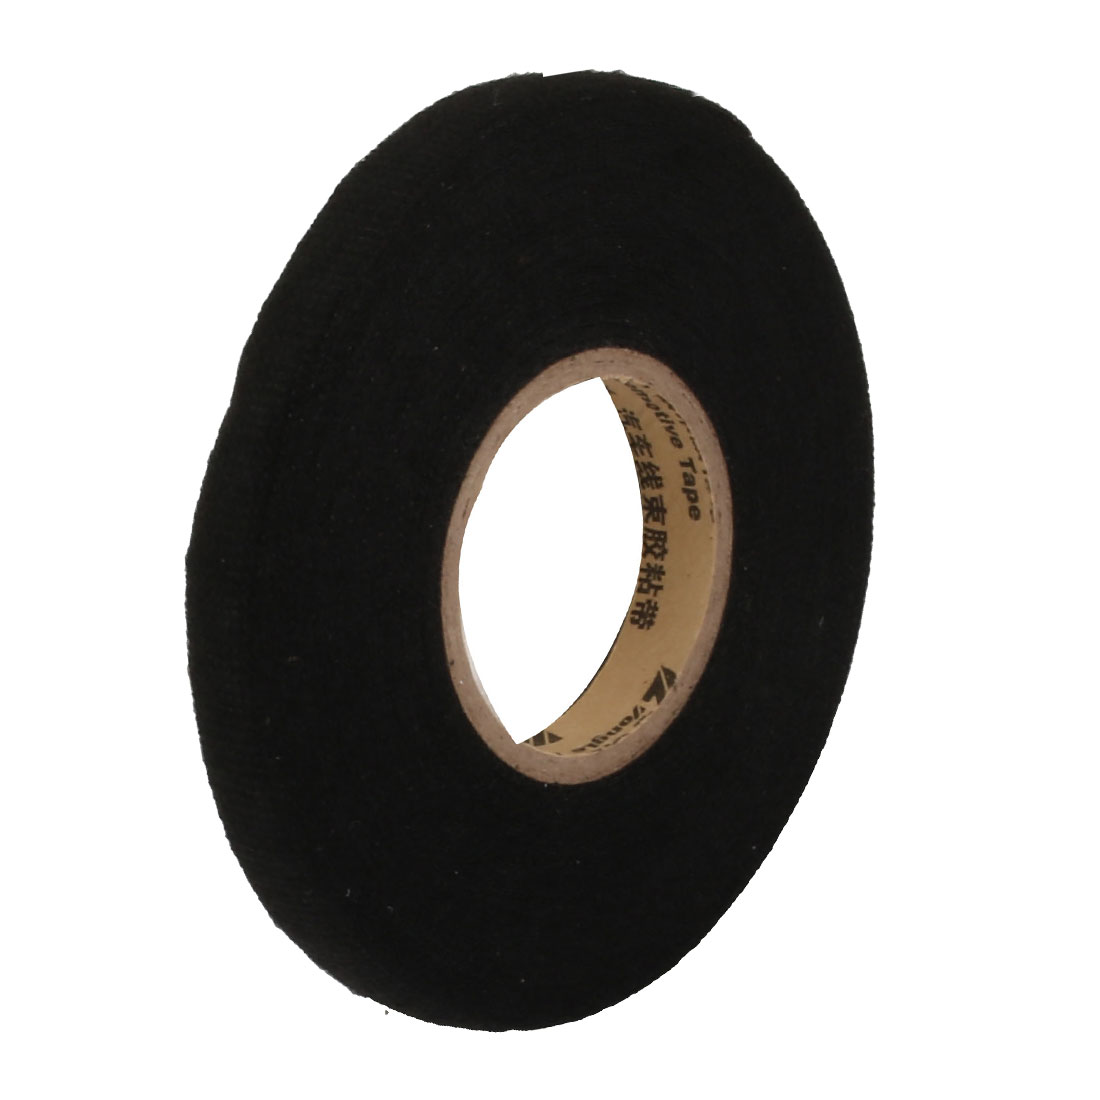 Car Wiring Harness Tape Diagrams Source Auto Cloth Black 15m Long 9mm Width Insulation Adhesive Wire Electrical